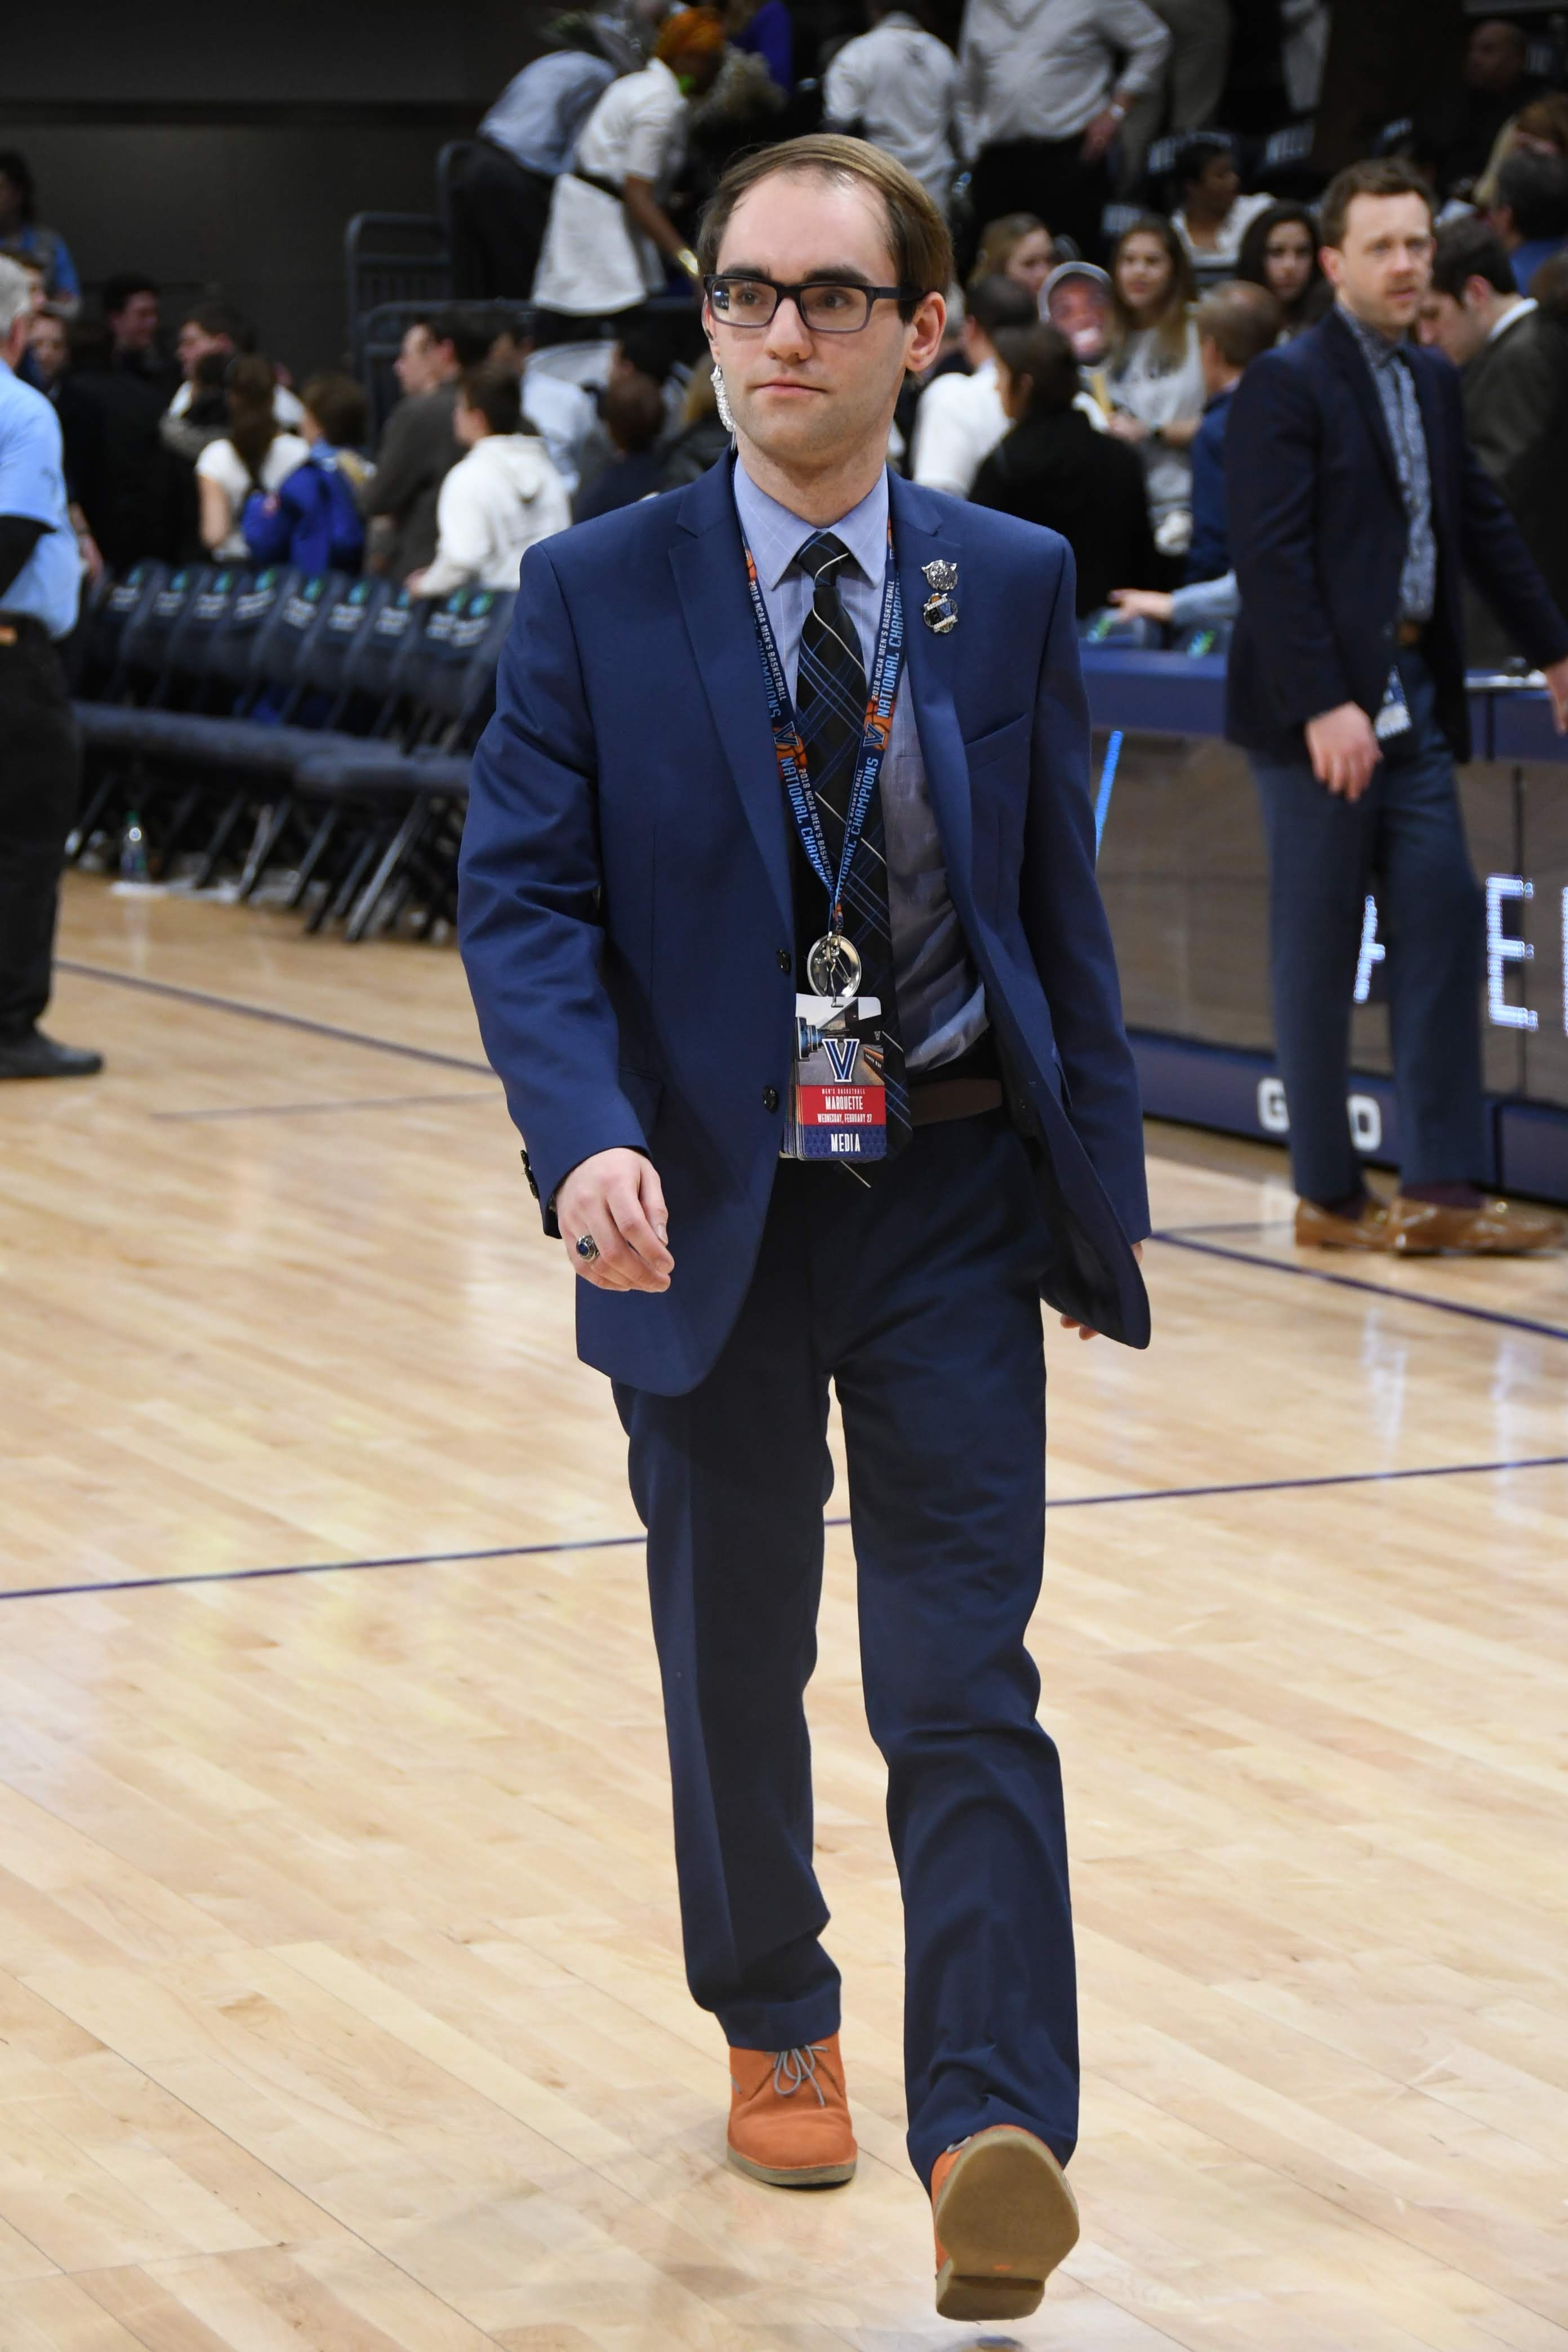 Andrew McKeough walks across the basketball court in the Finneran Pavilion at Villanova University after a Men's Basketball game in March of 2019